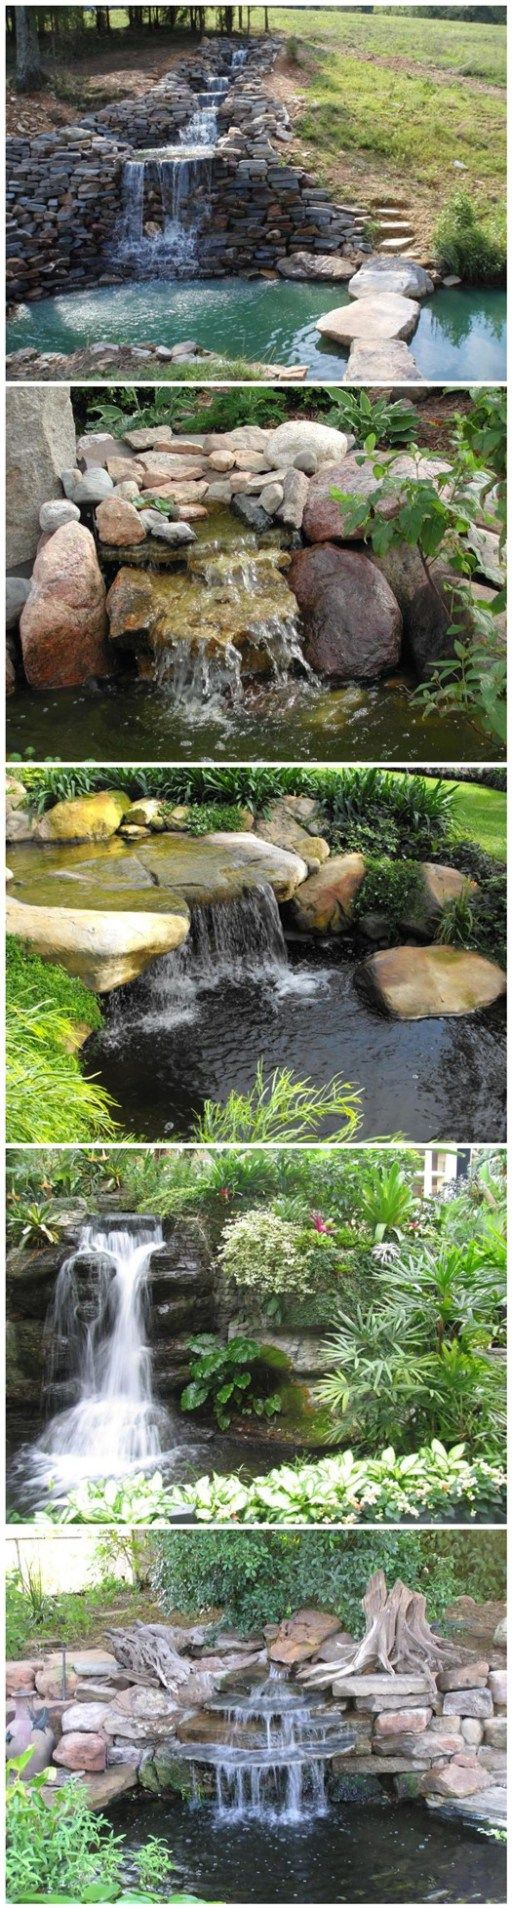 238 best images about crafts on pinterest crafts for Building a backyard pond